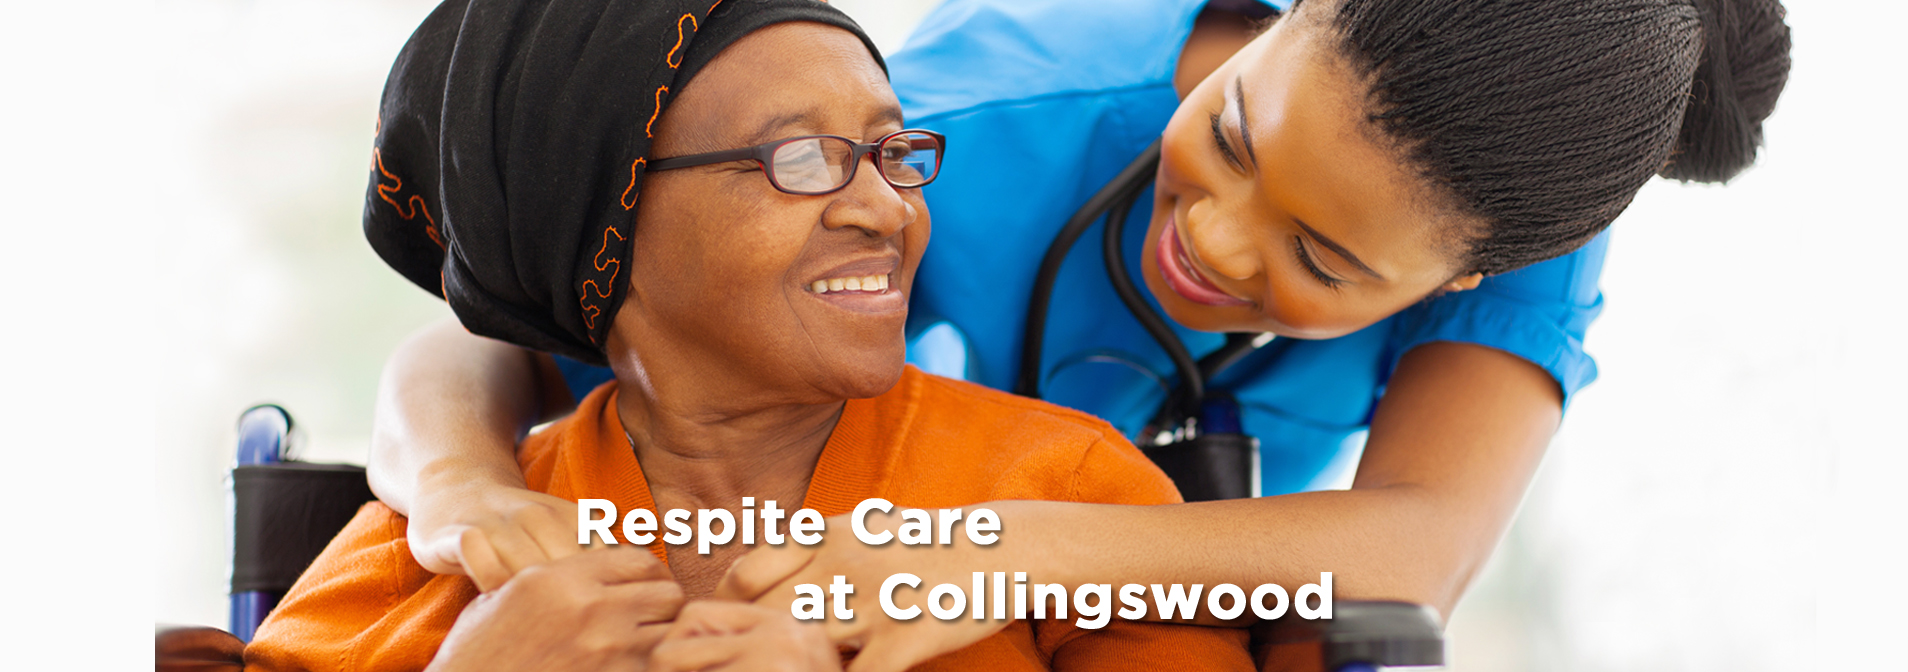 Respite Care Services at Collingswood